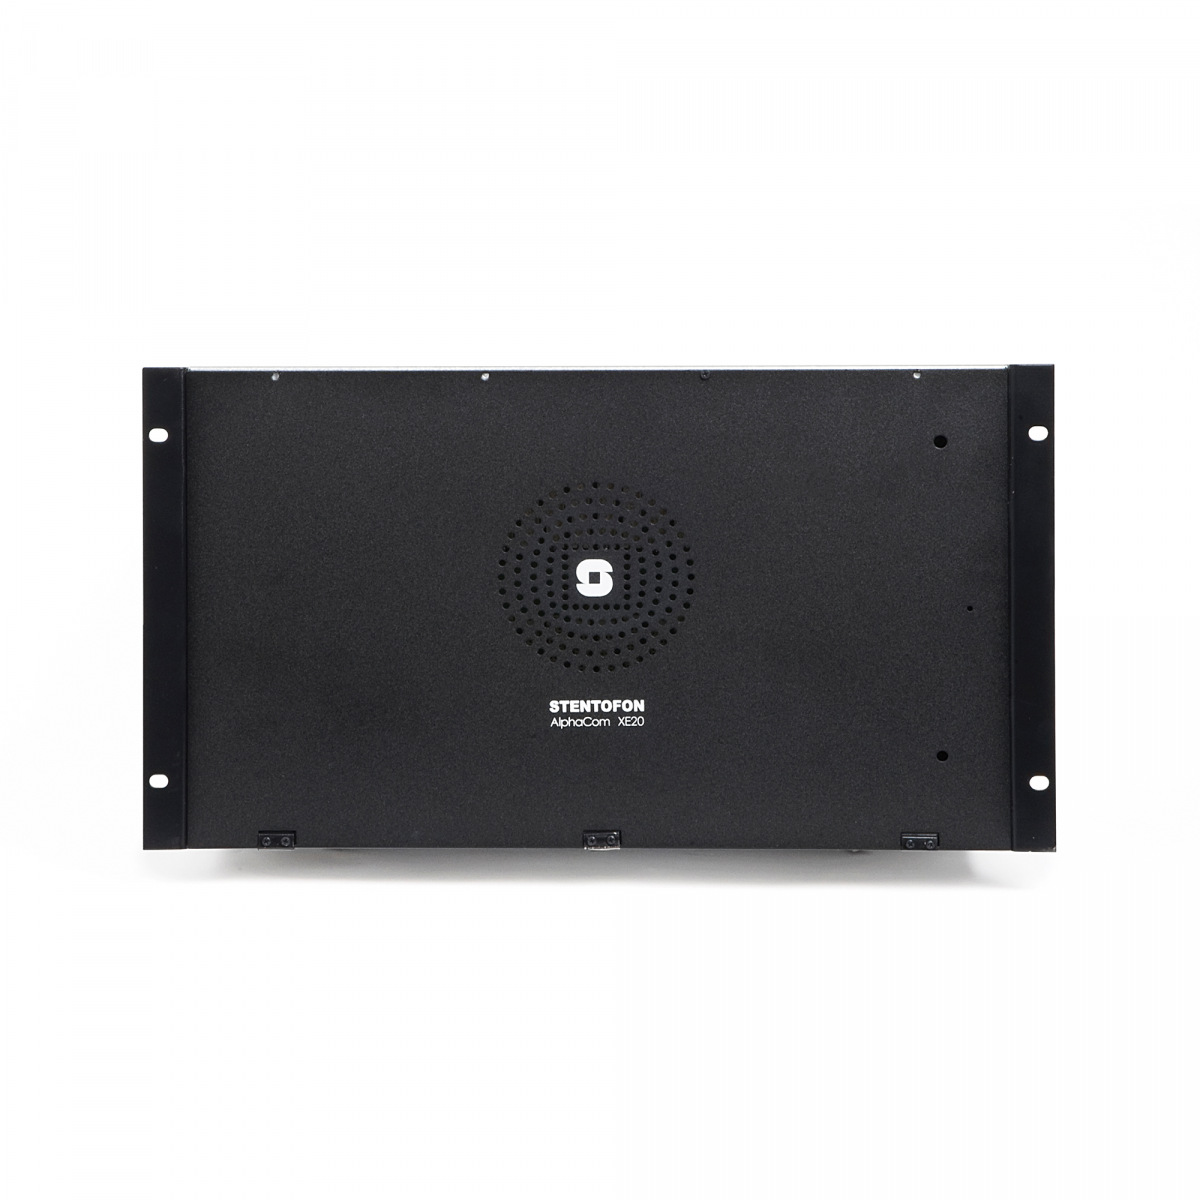 1009621000 AlphaCom XE20 Intercom Exchange, Uo to 552 IP Stations and 102 Traditional Intercom Units